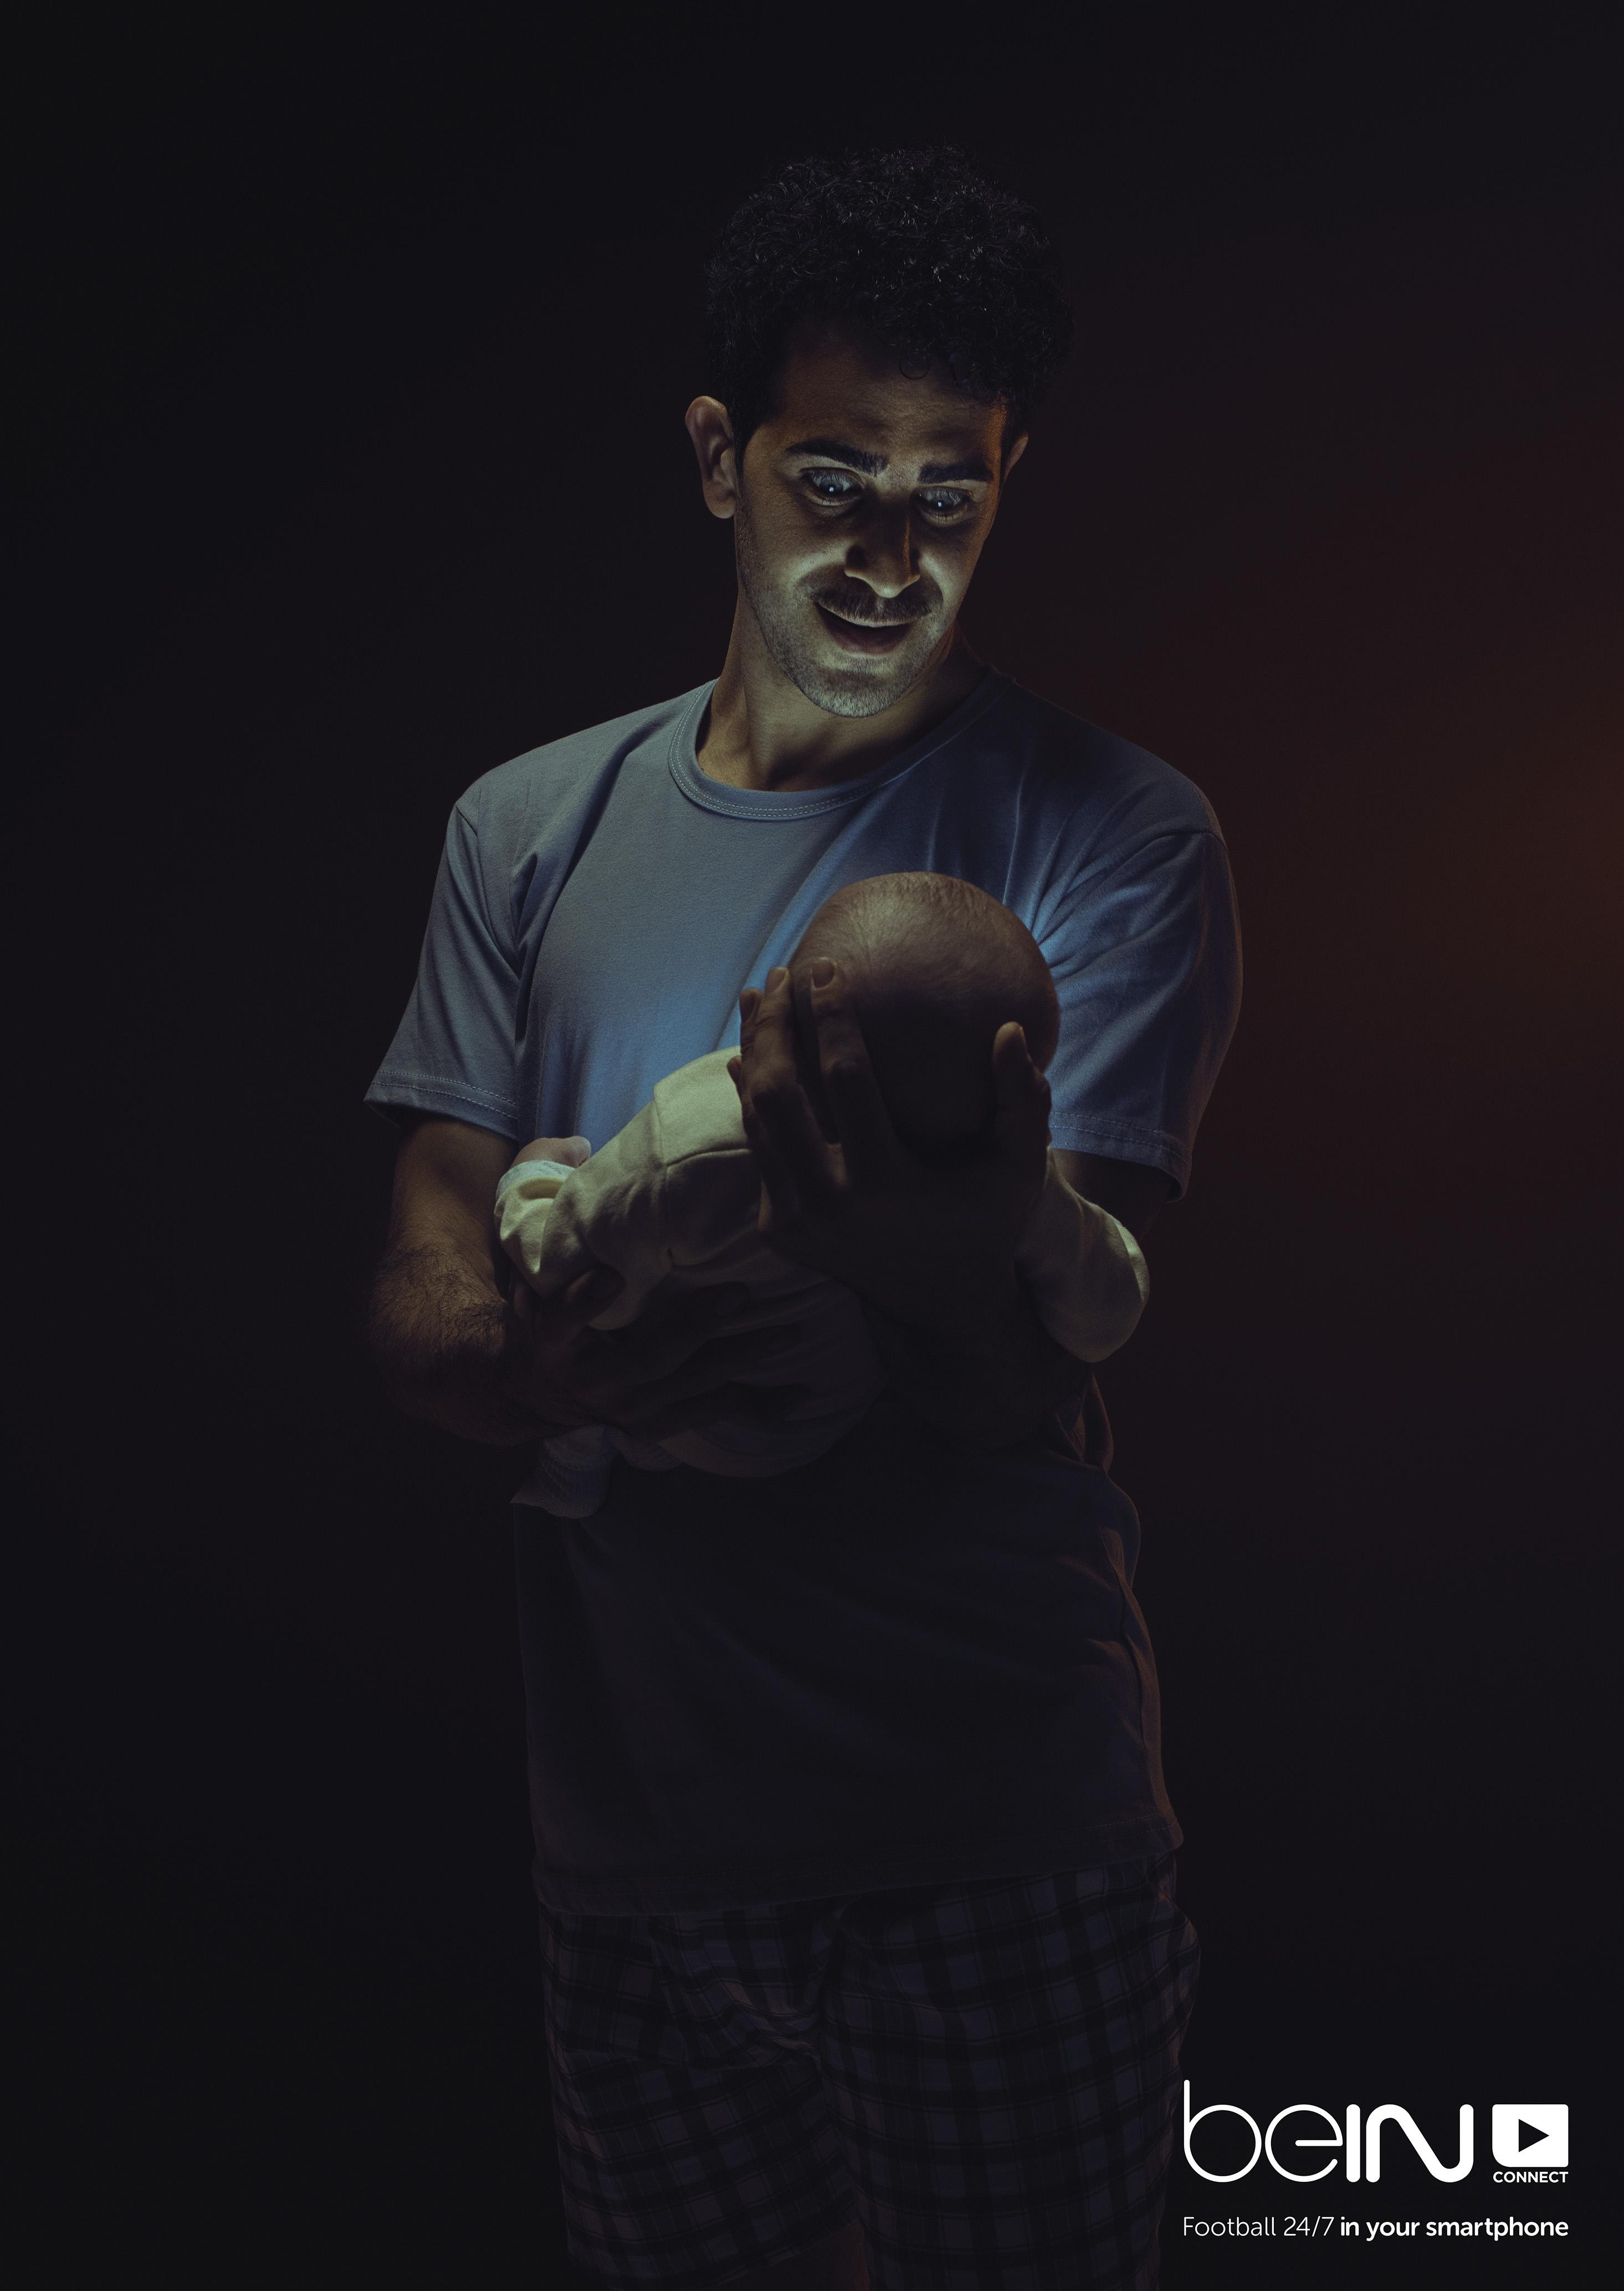 beIN SPORTS Print Ad - Fathers, 4